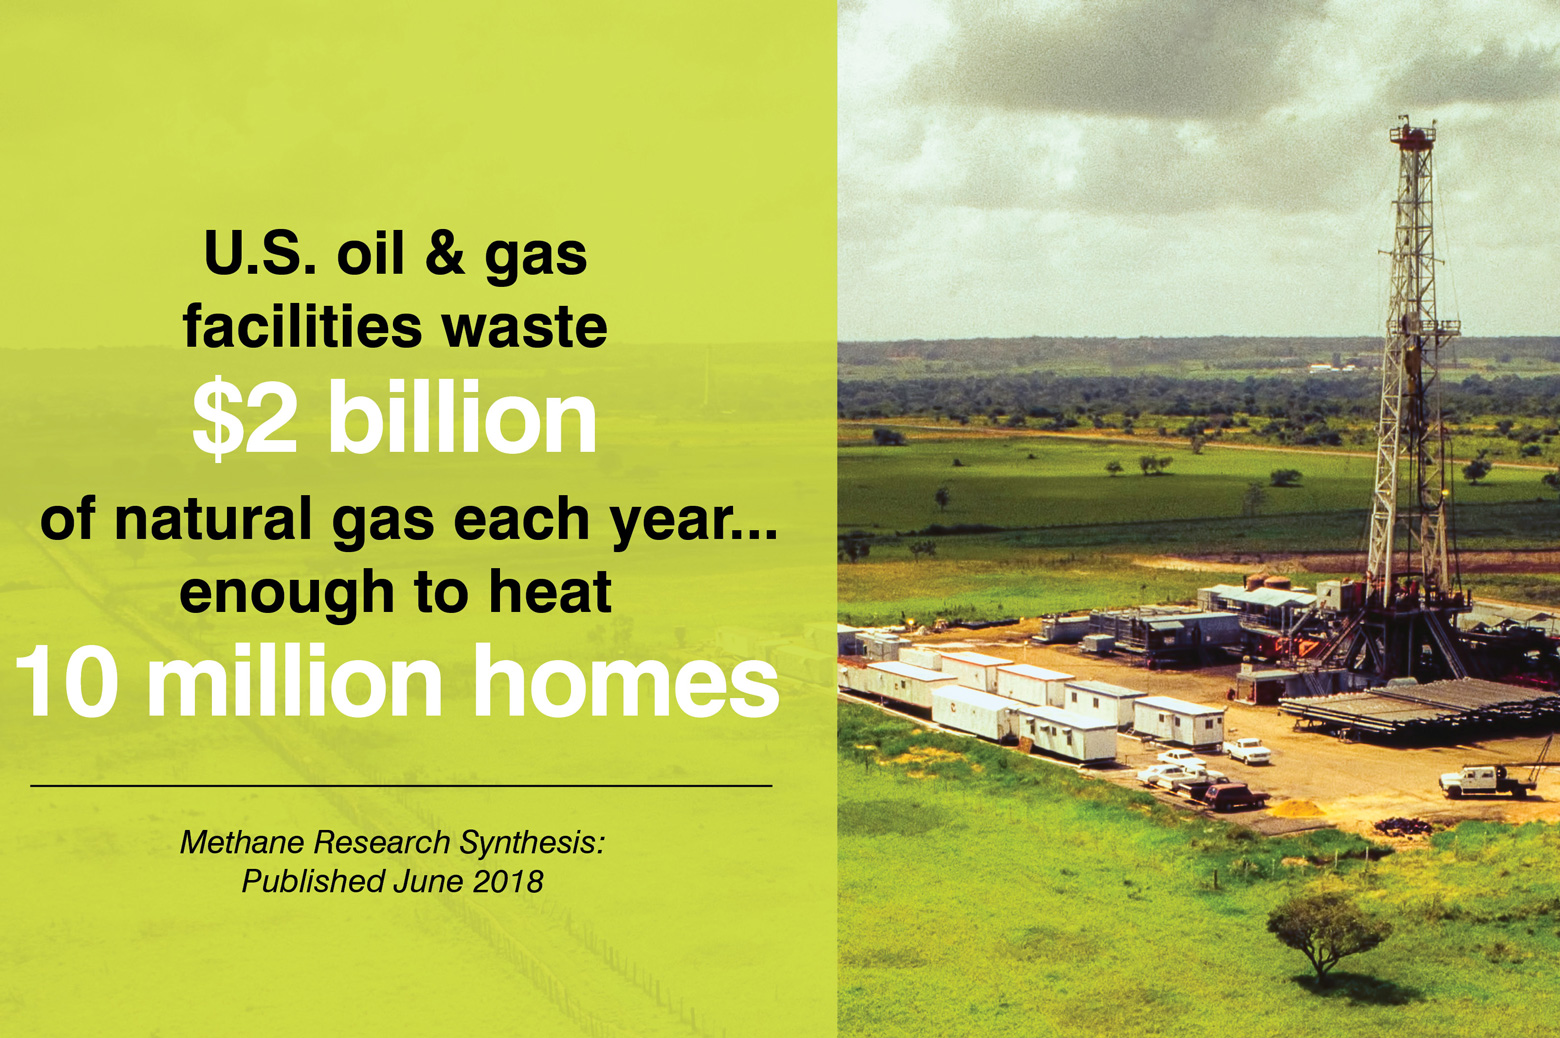 Infographic stating $2 billion of natural gas per year is wasted